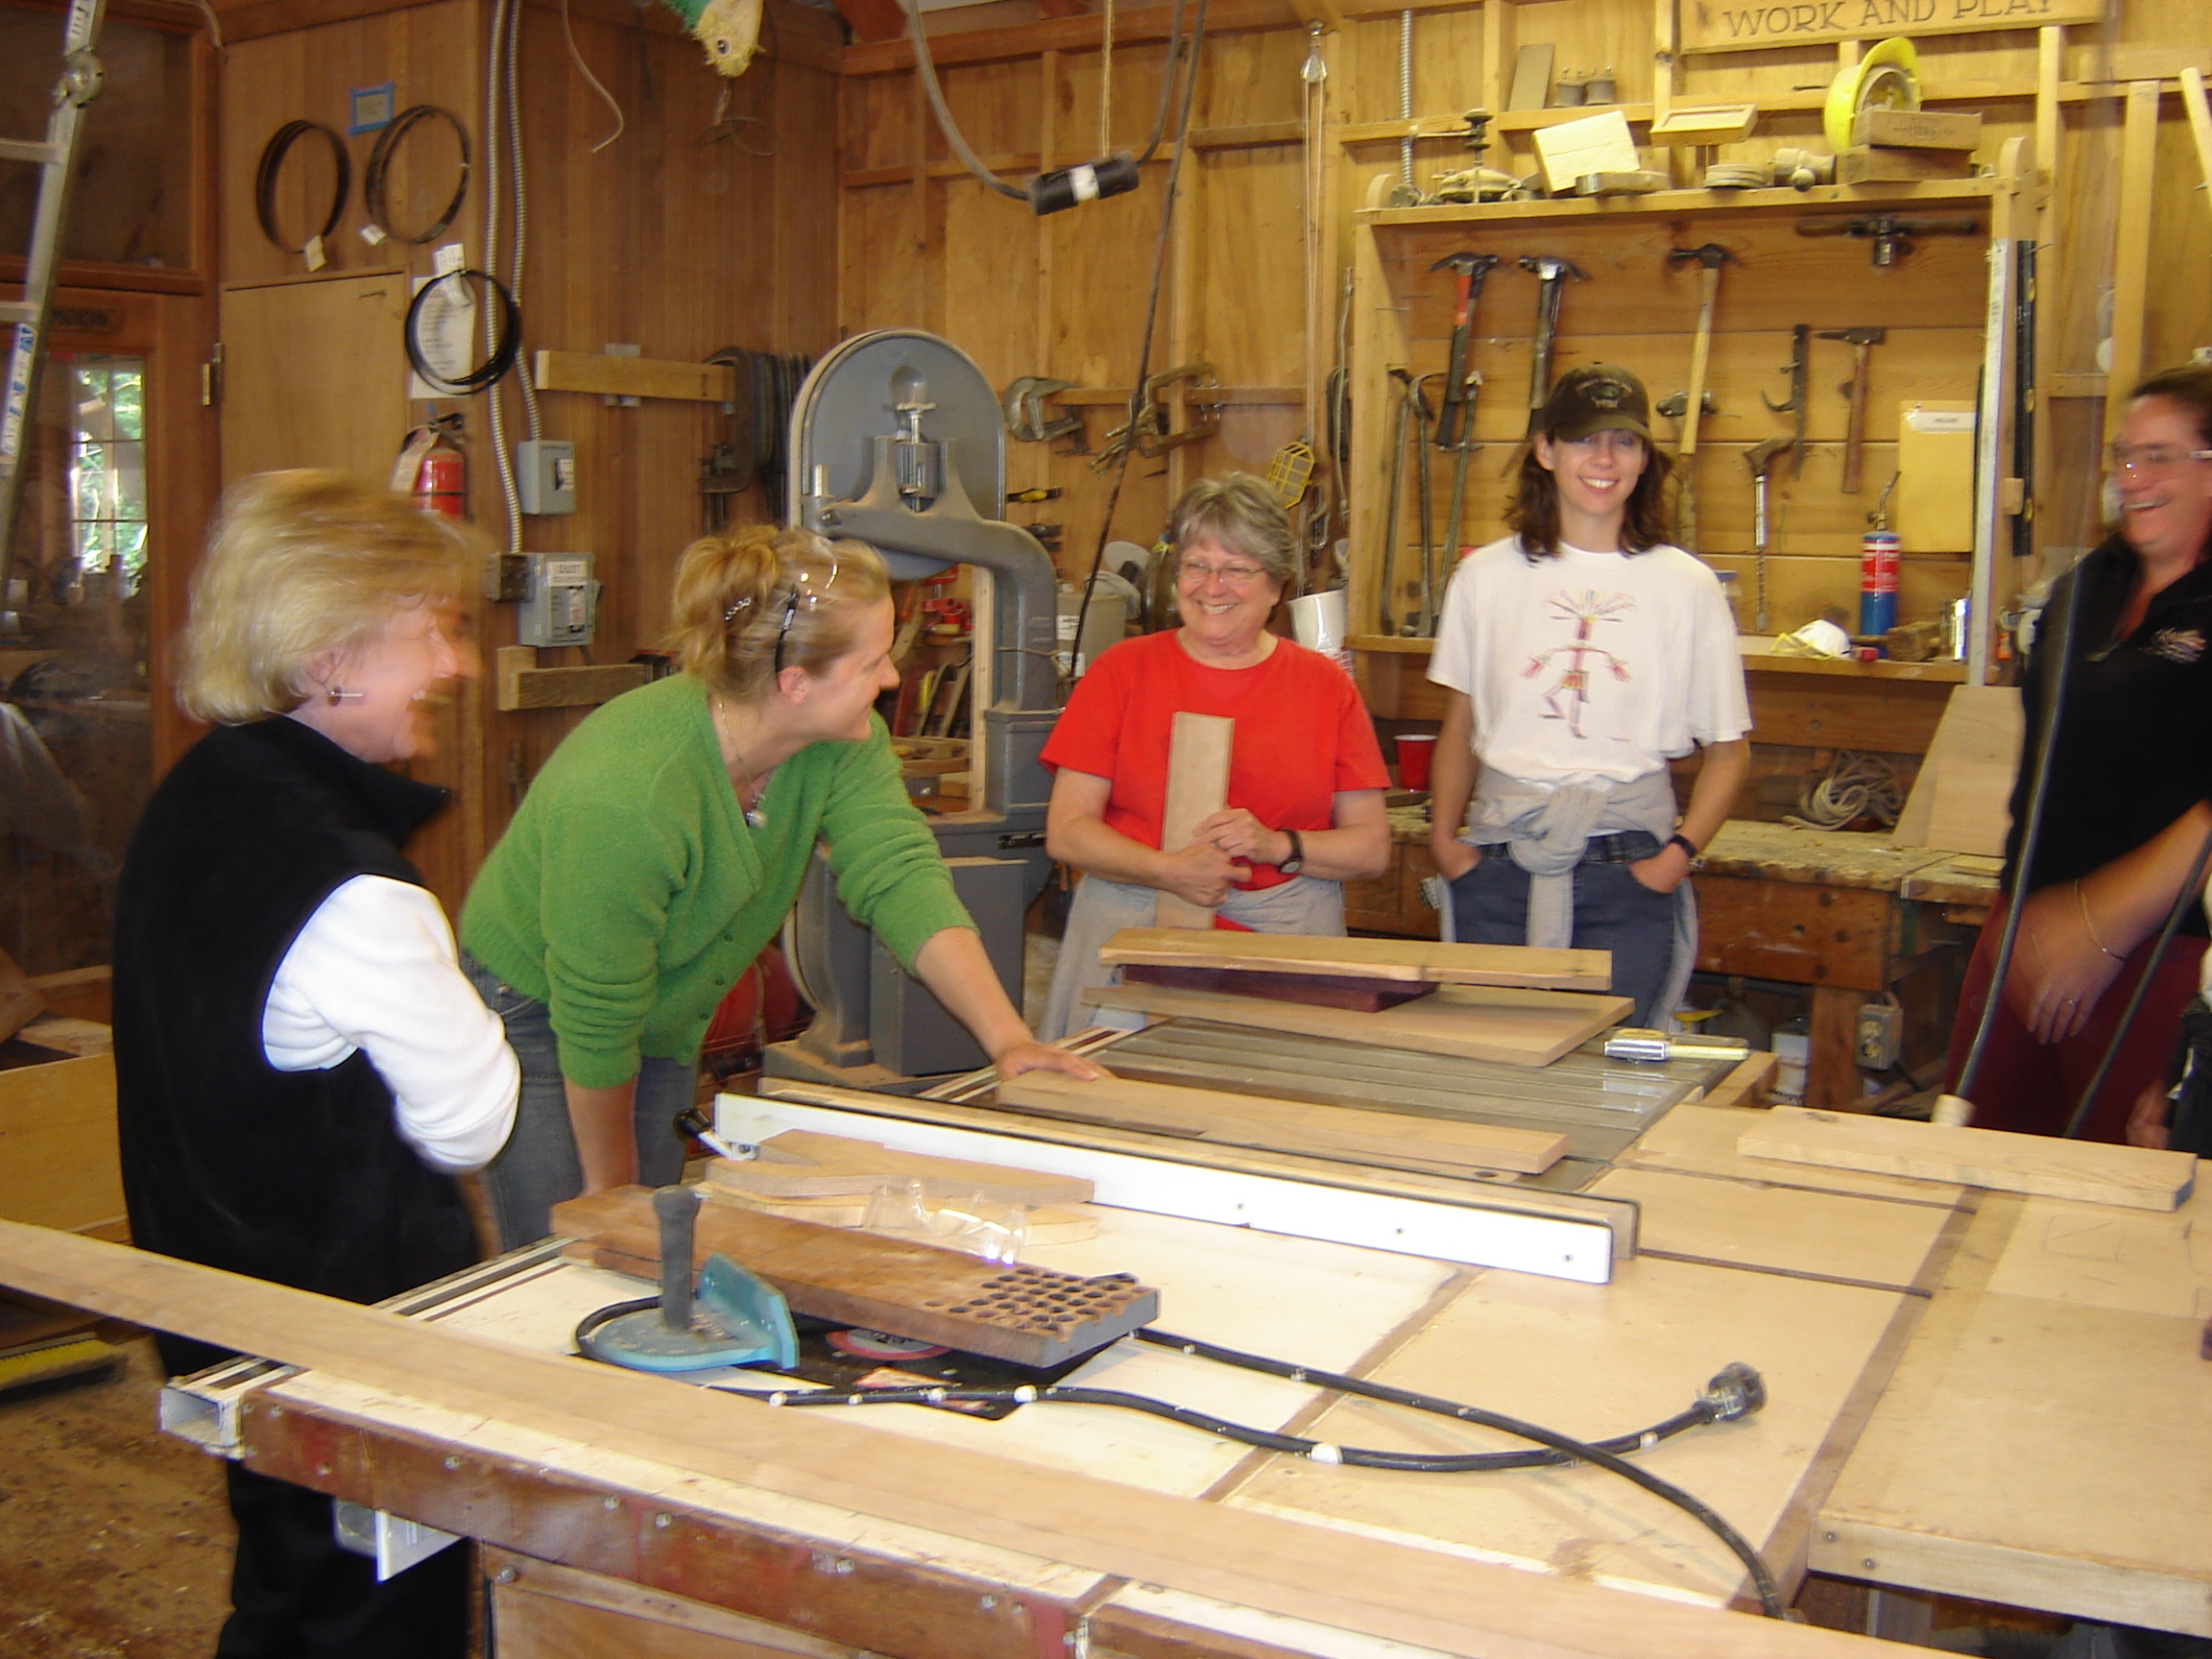 Women S Woodworking Classes At Cwb The Center For Wooden Boats